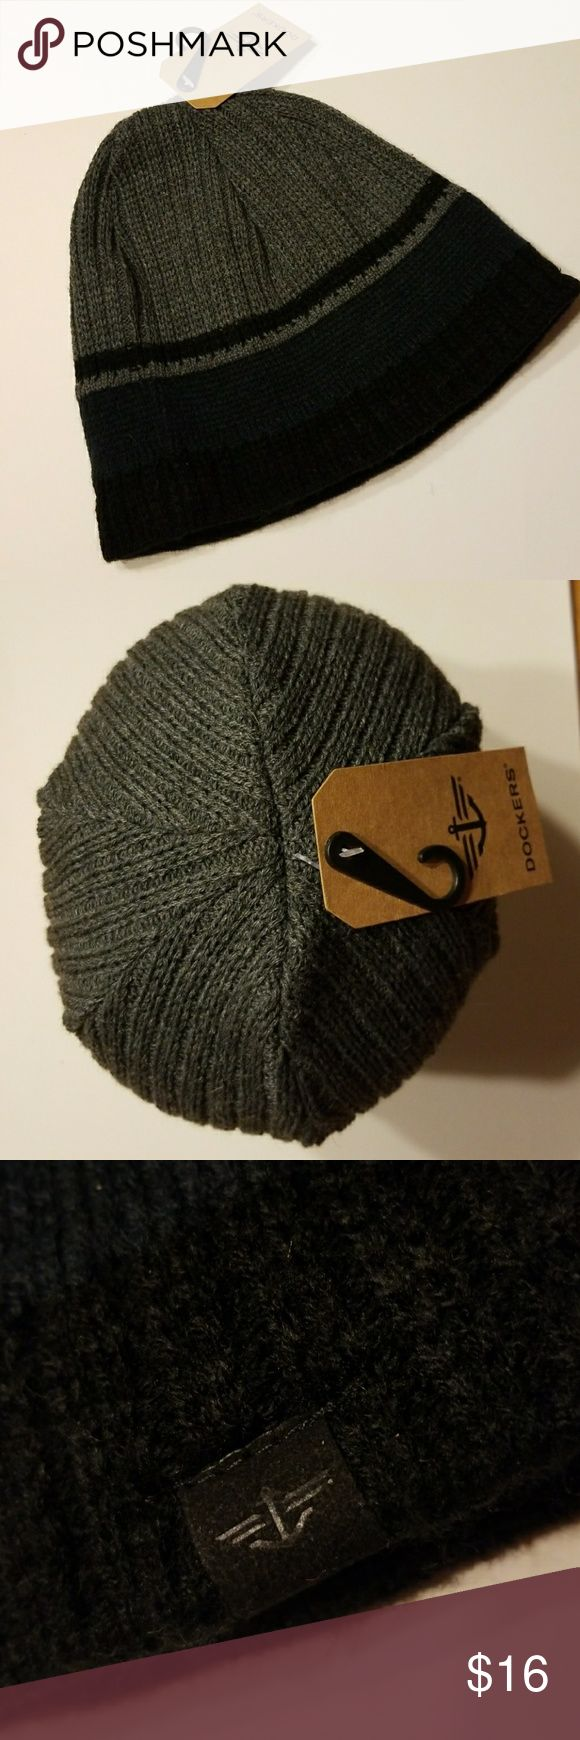 "Dockers Knit Hat Fleece Lined Banding NEW WITH TAGS NEVER WORN   Dockers Fleece Band Lining Inside This Stocking Knit Ski Hat to Keep You Cozy and Warm !  Band Measures @ 2"" Gray and Black Unisex  Be Sure To Check Out The Rest of My Listings For Additional Mens Women's Kids Winterwear Gloves Scarves Hats Mittens Coats Socks and Boots   ✔ BUNDLE UP FOR SAVINGS   ✔ Dockers Accessories Hats"